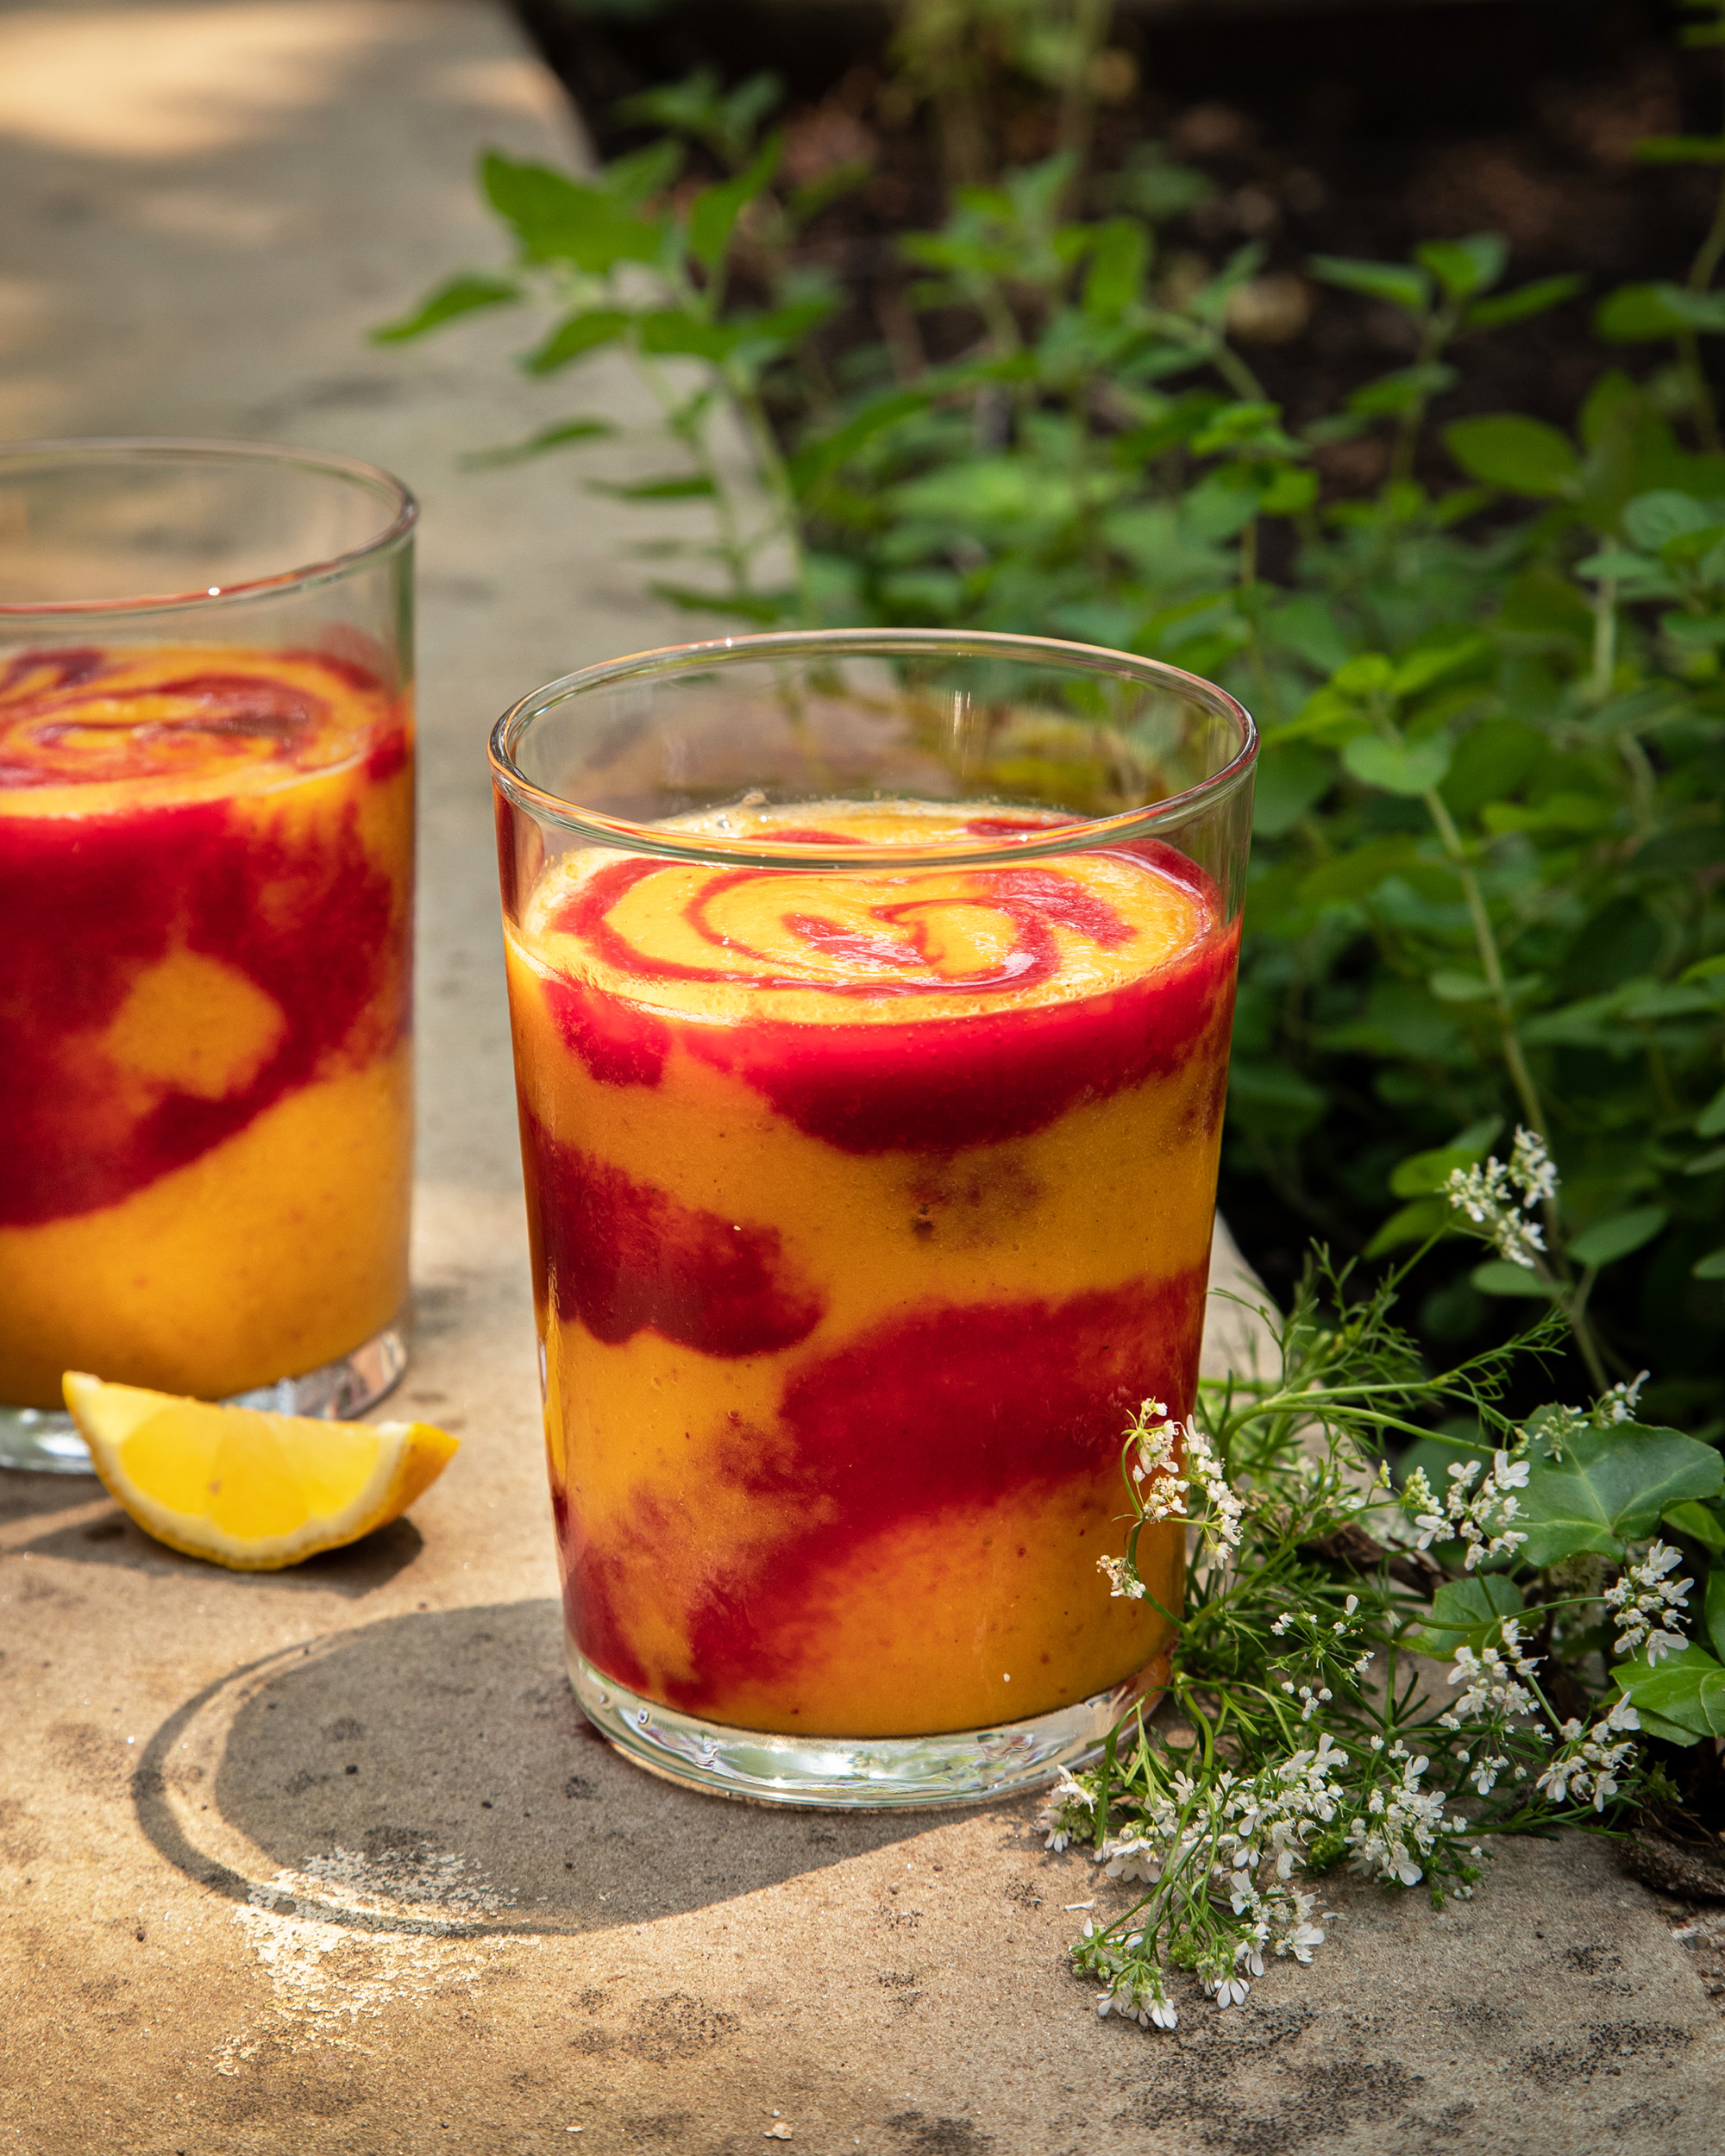 A head on shot of a swirled orange and magenta smoothie in a clear glass. The smoothie is on a concrete background with cilantro flowers nearby.